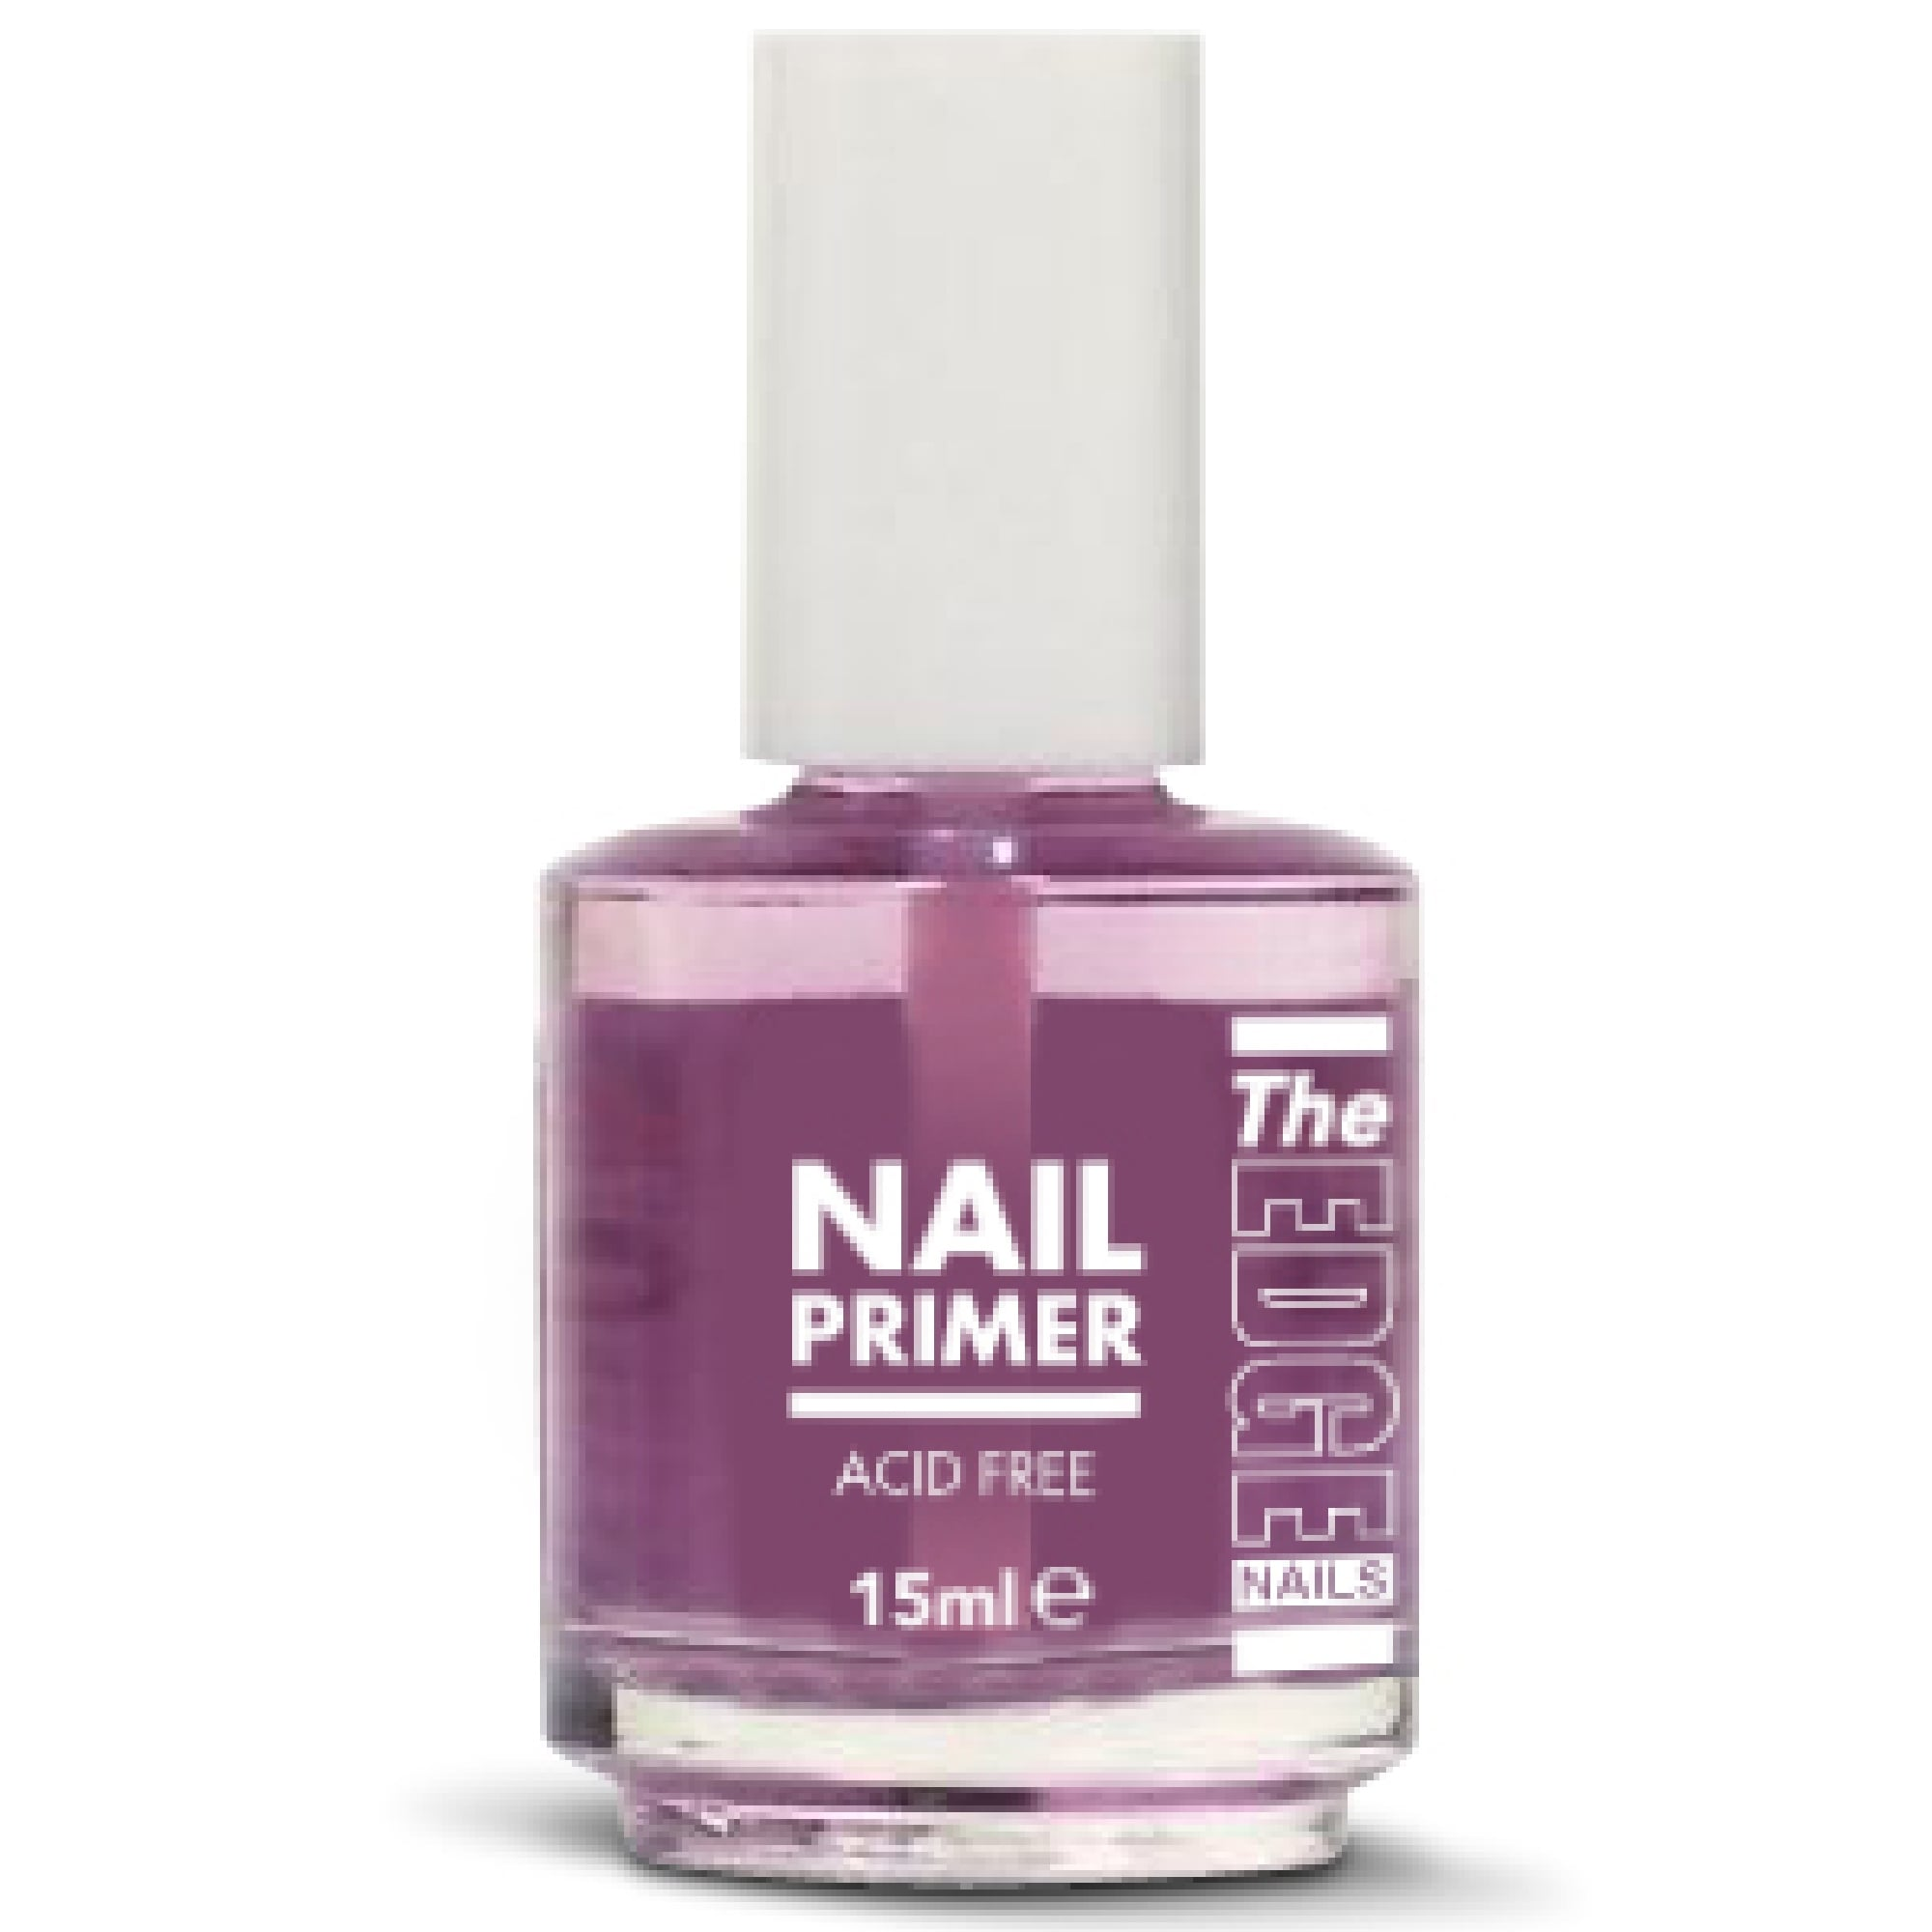 Edge Nails Professional Acid Free Nail Primer at Nail Polish Direct